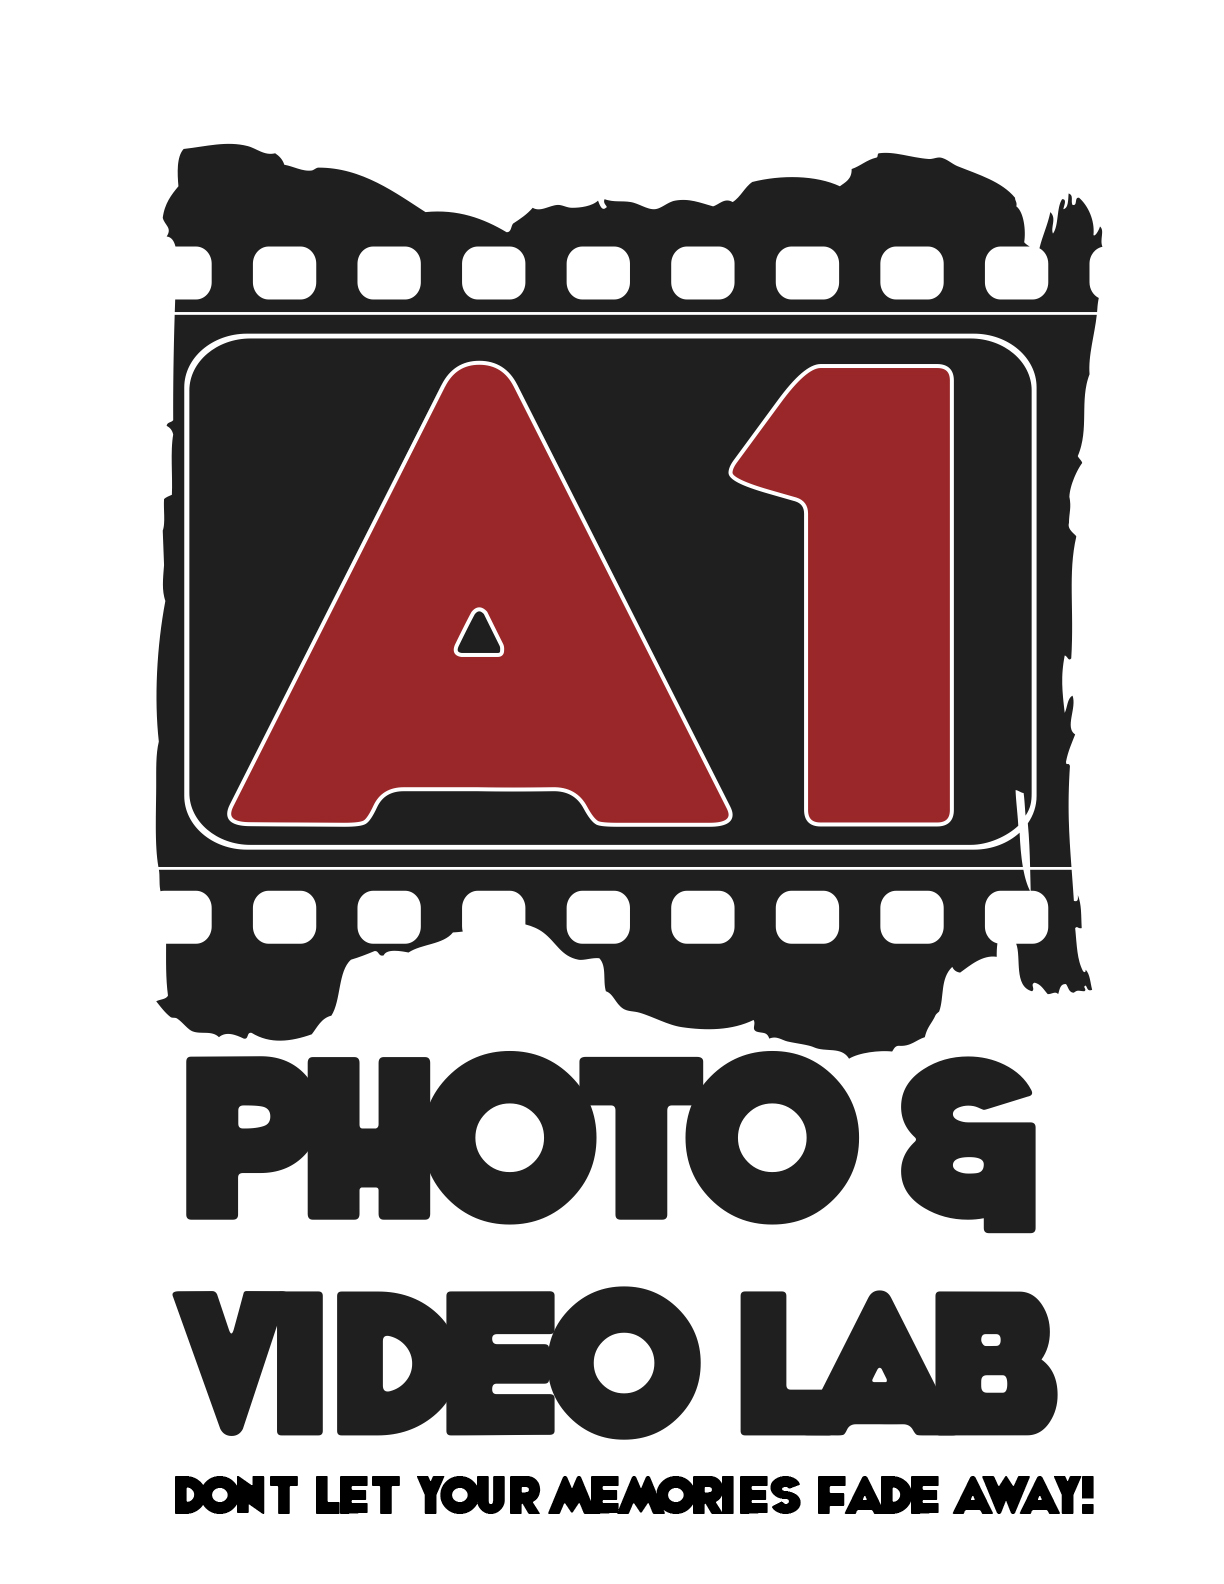 A-1 Photo & Video Lab, Berkeley, CA - Localwise business profile picture